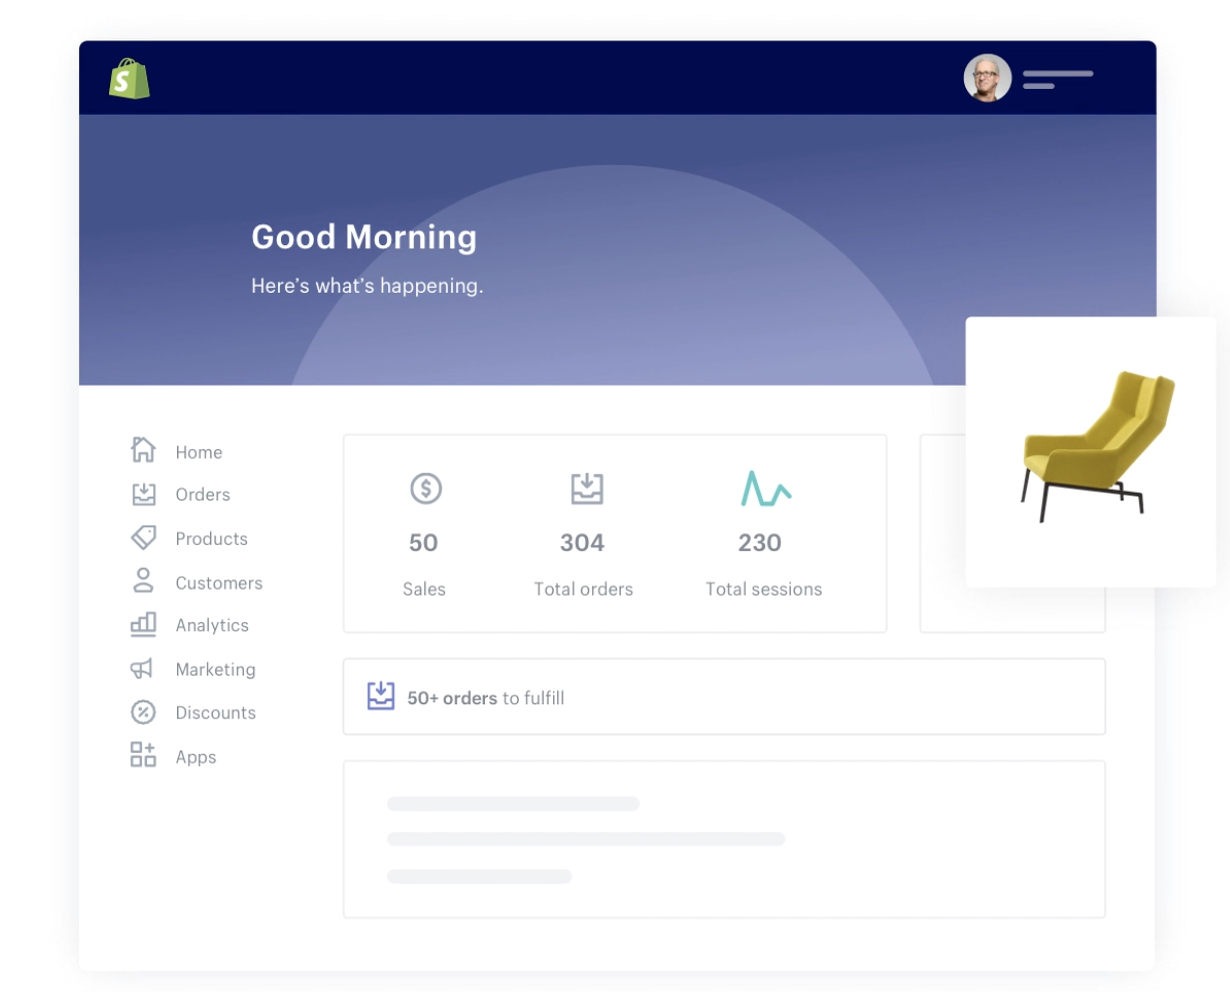 The Best 7 Ecommerce Software in 2019 1